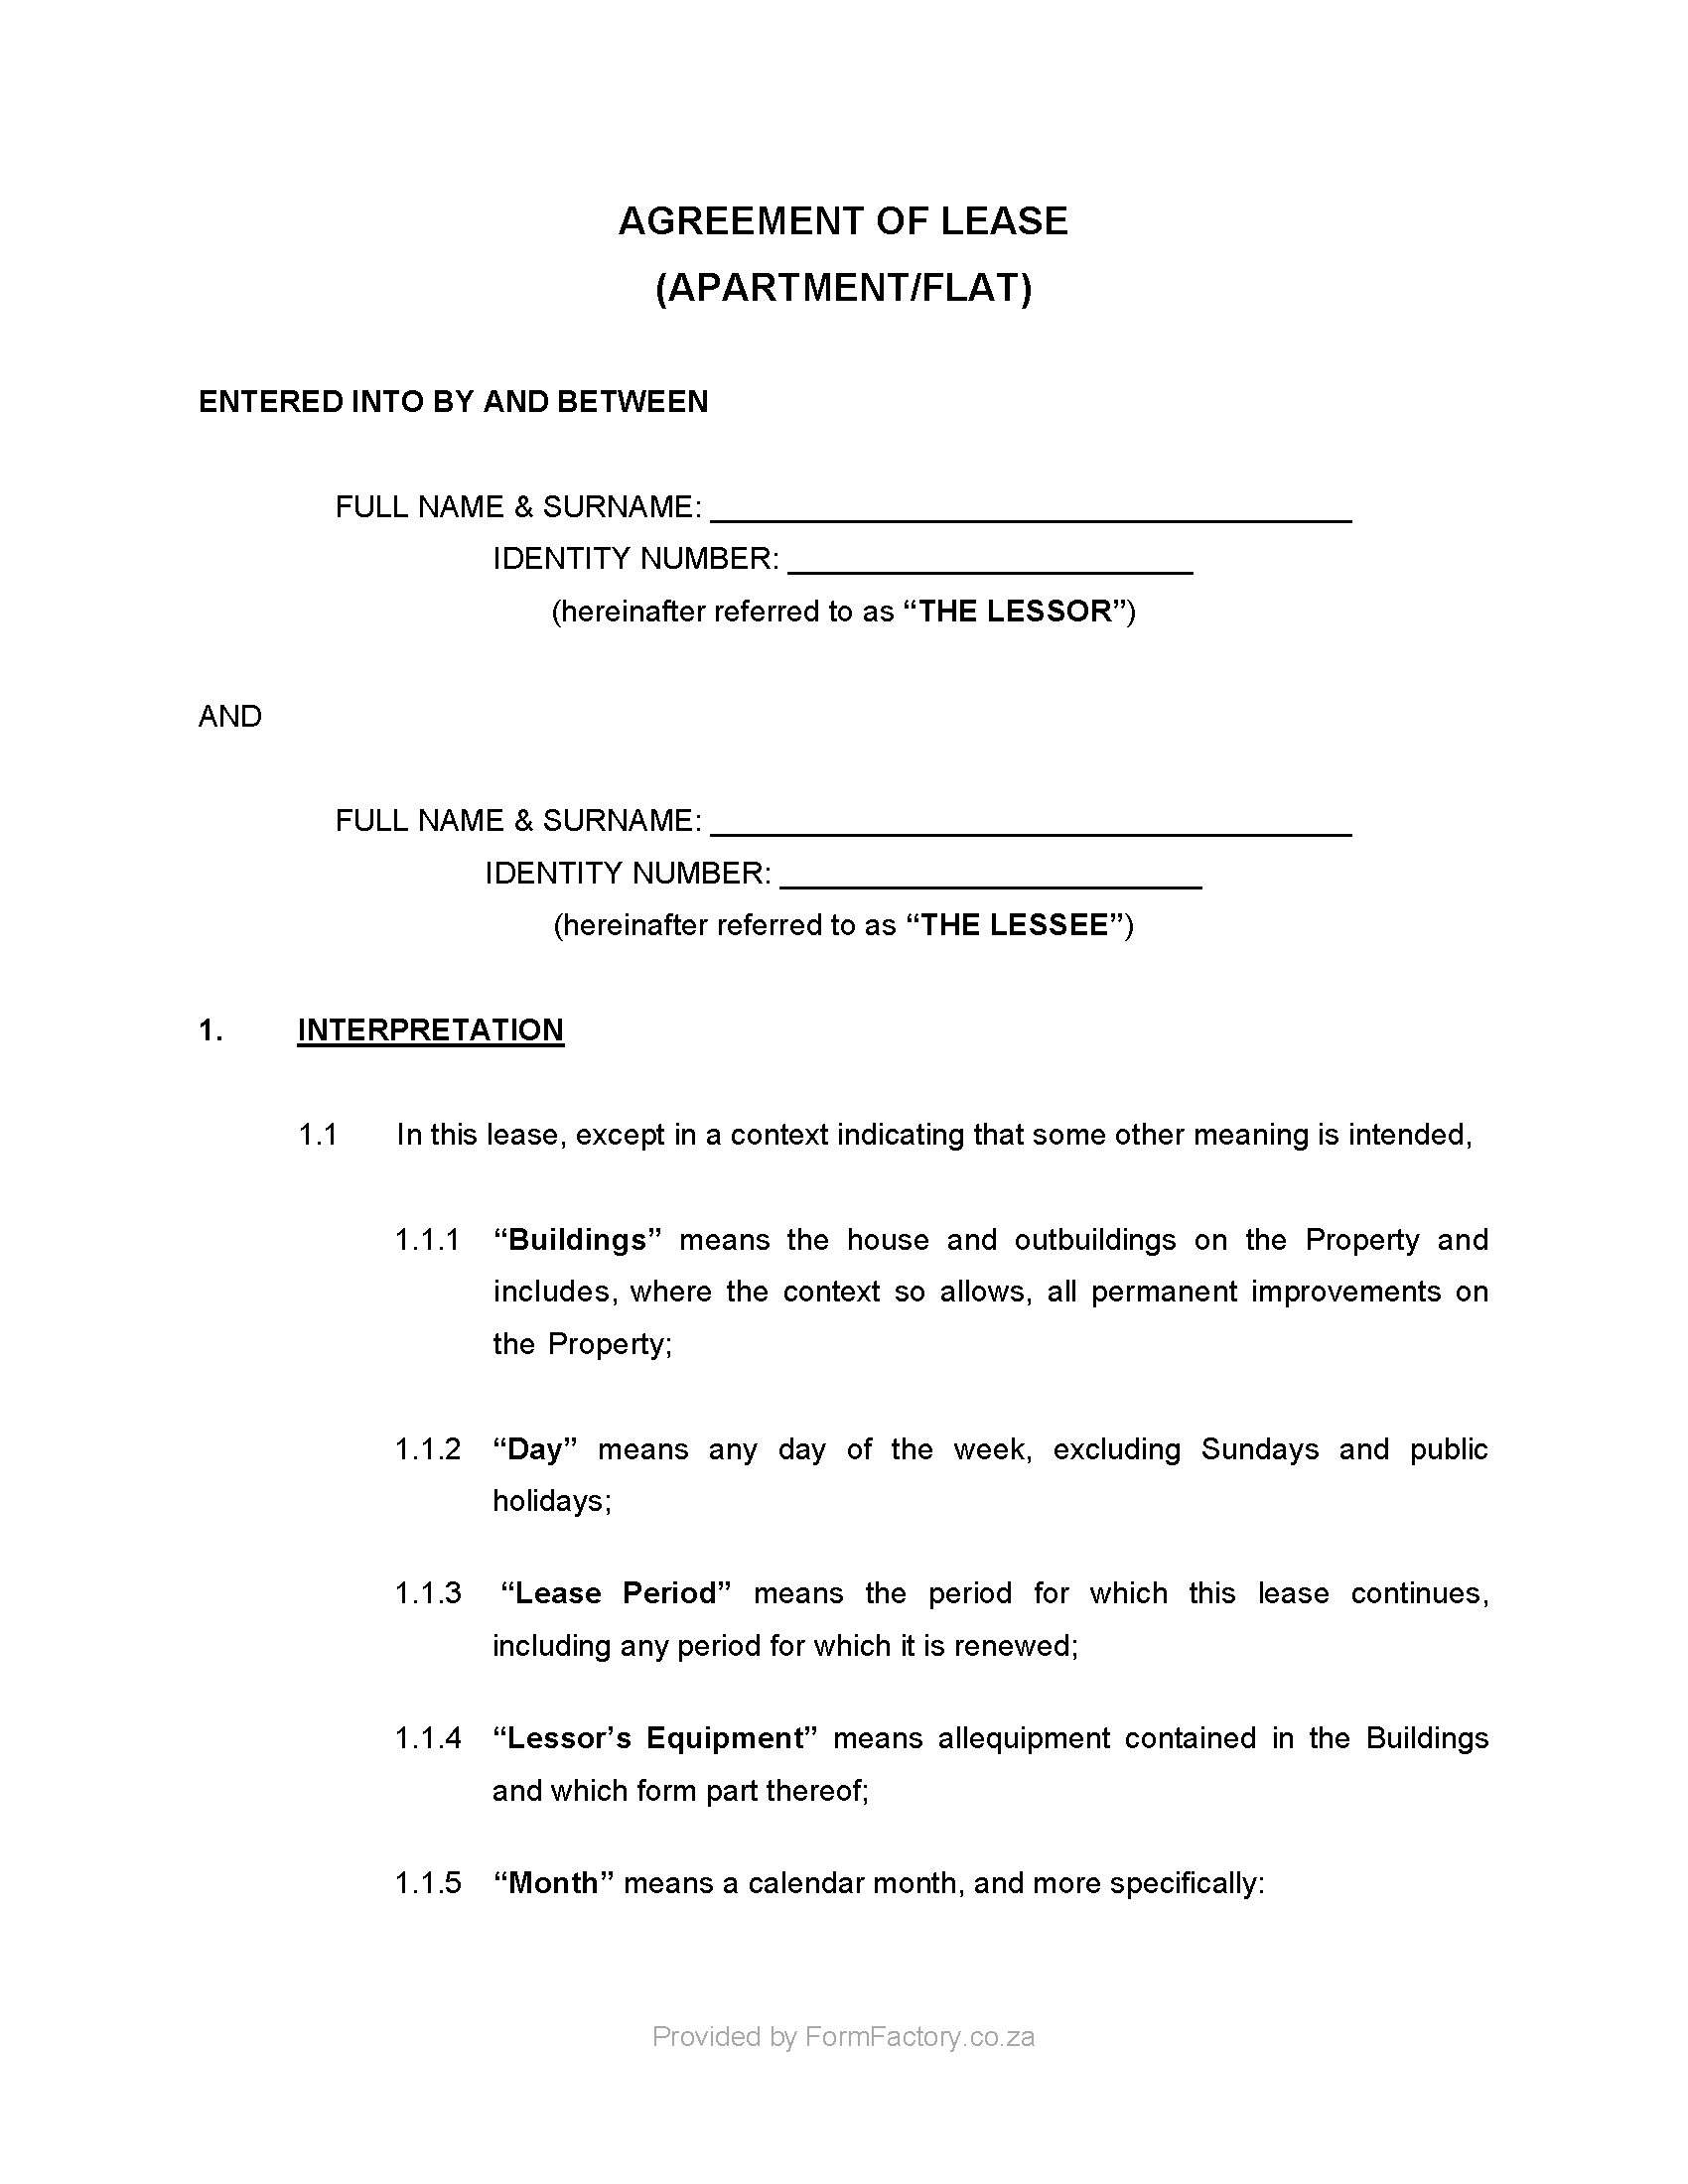 Download Residential Lease Agreement Template - FormFactory